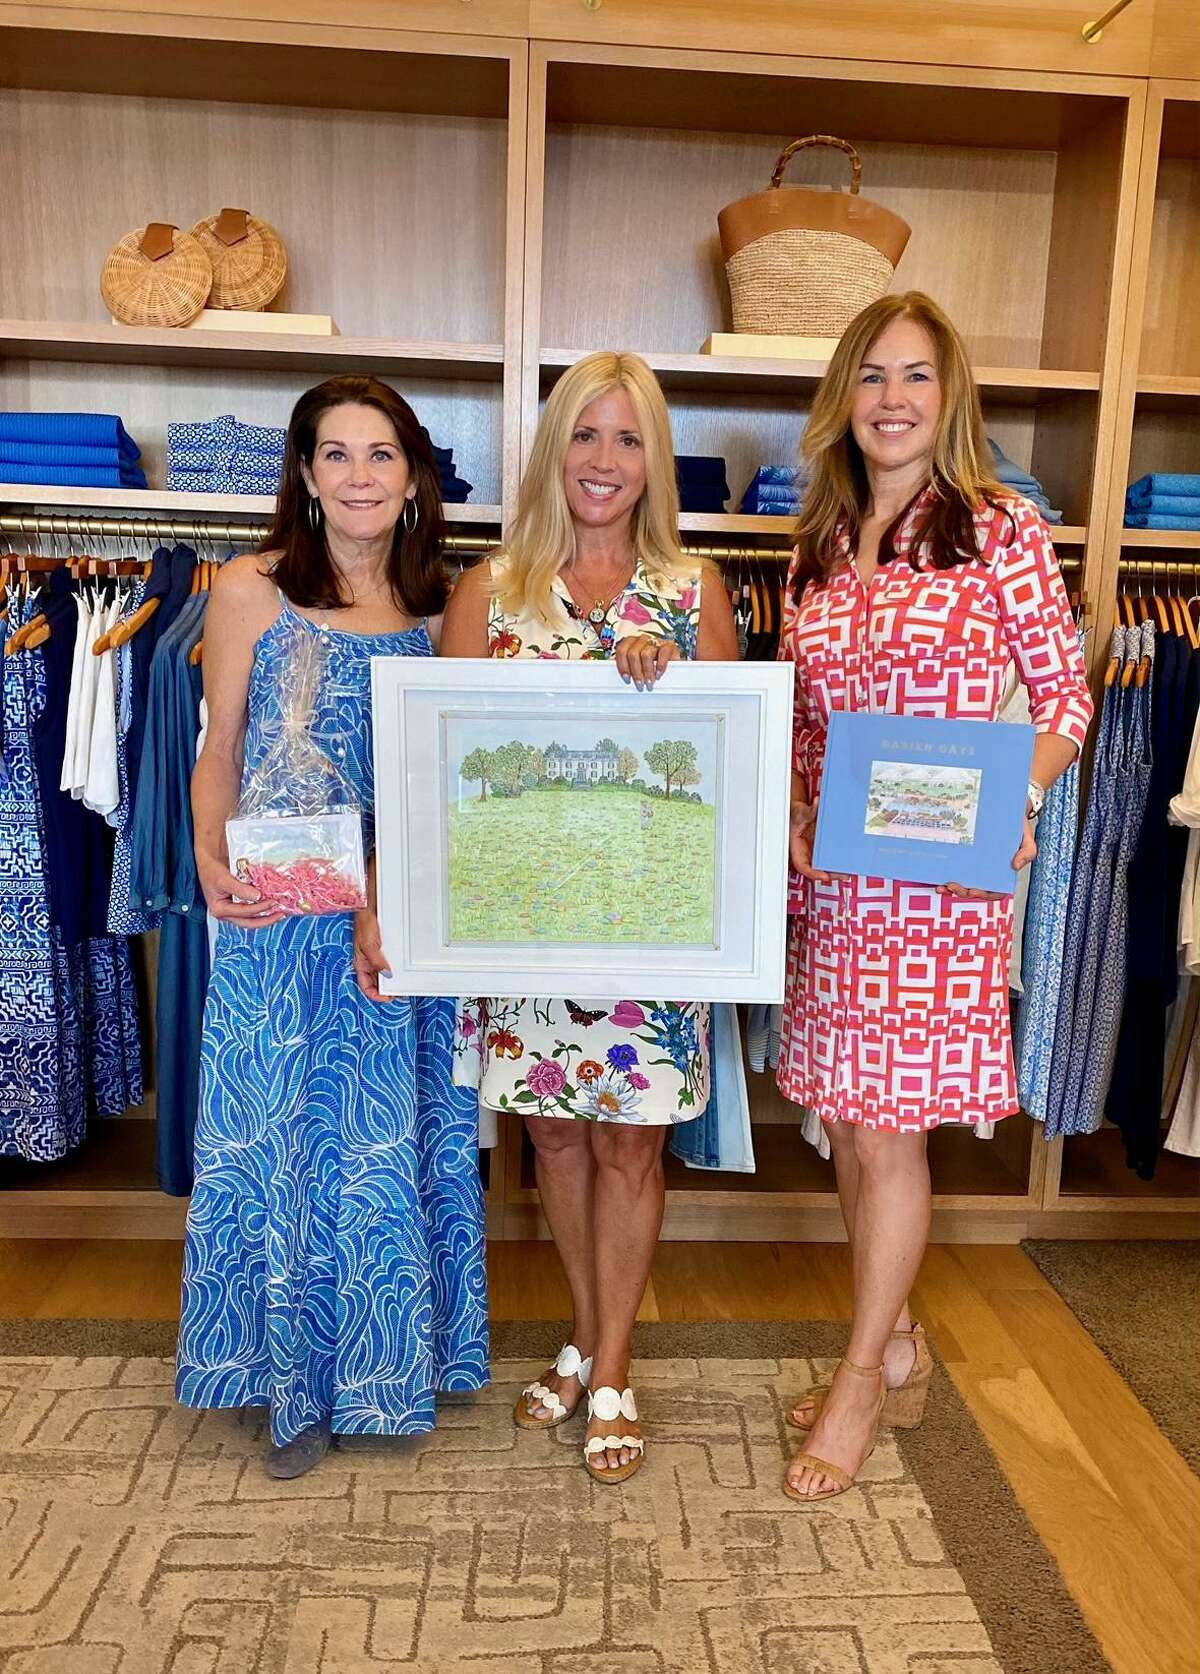 The Darien Community Association (DCA) thanked J.McLaughlin's recent Sip, Shop and Celebrate Spring event. Pictured, from left, are Suzanne Brannan, Diane Weeks, and Wanda Forlivio, DCA co-president.